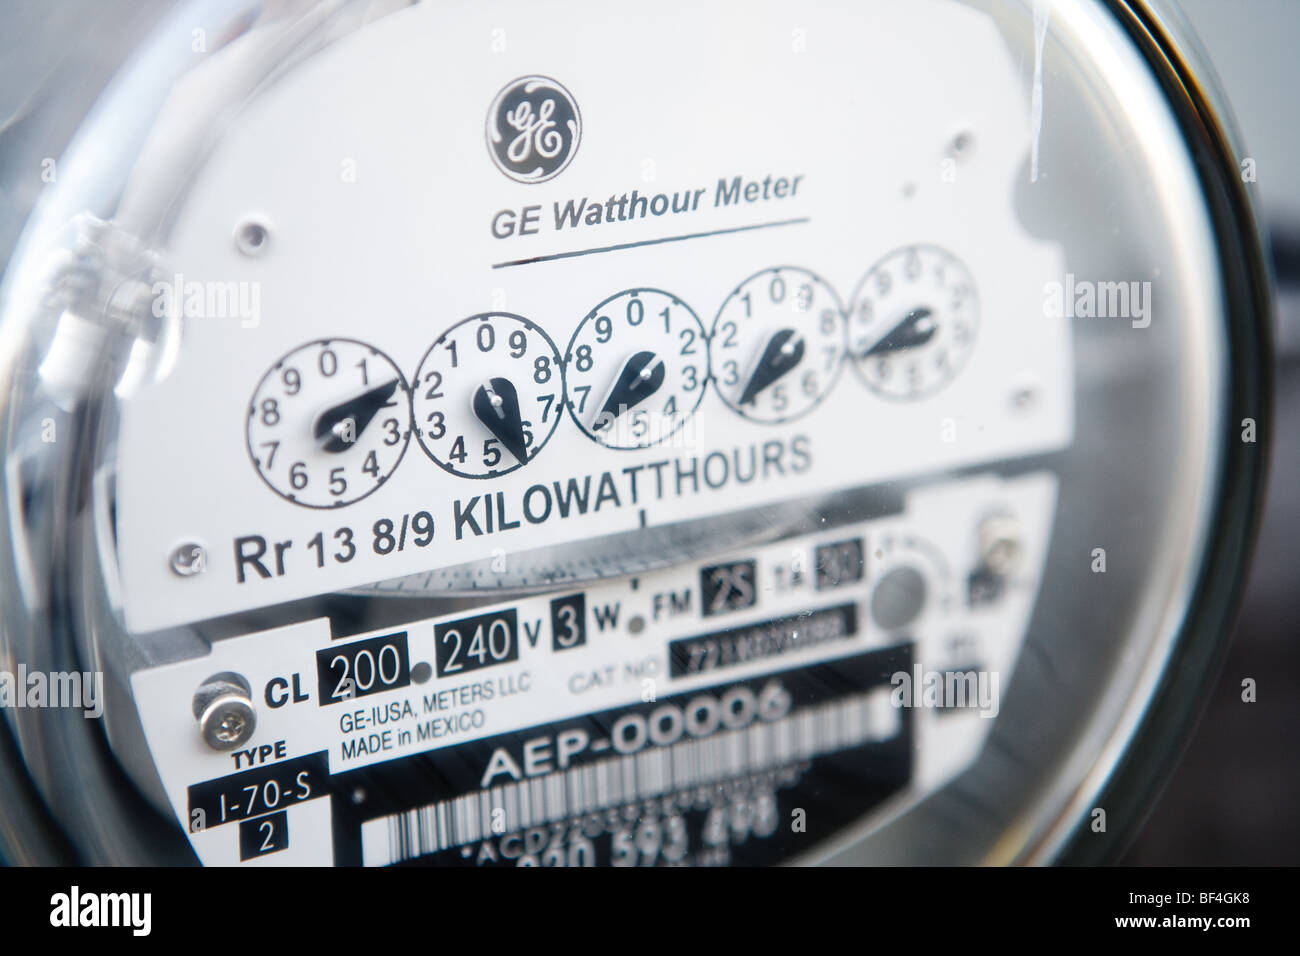 Close up view of an electric meter - Stock Image